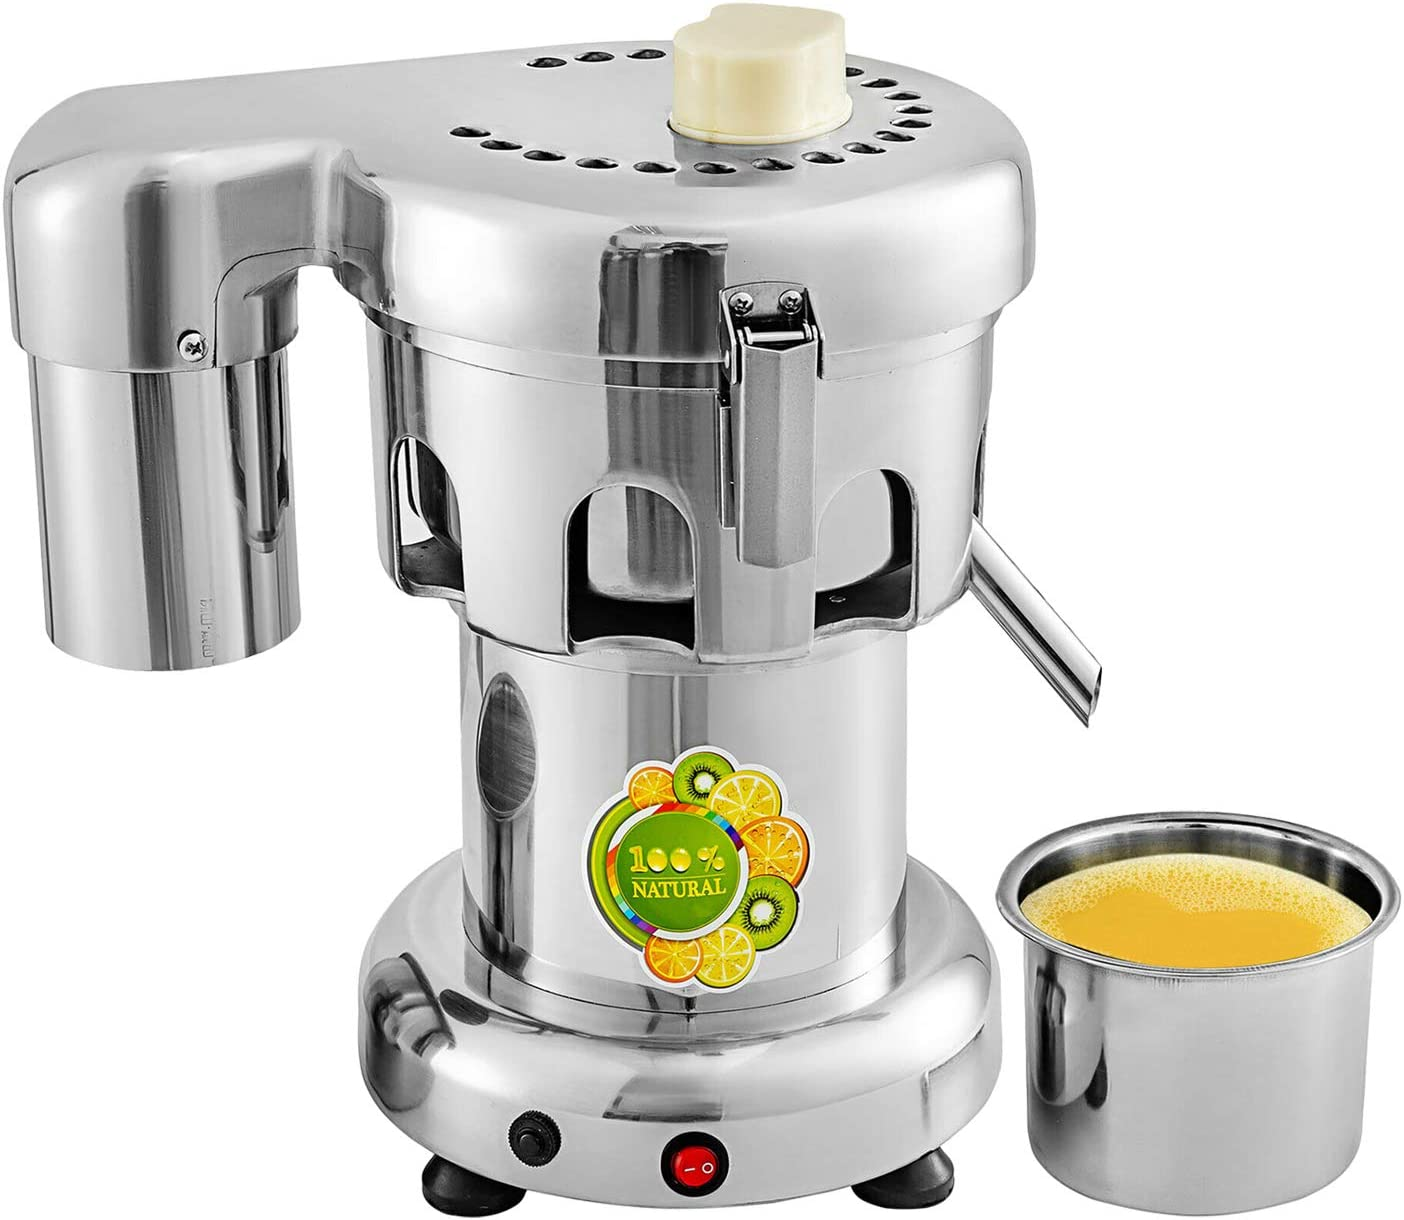 GorillaRock Juicer Machine | Fruit and Vegetables Juice Maker | Stainless Steel Blades | Commercial Juice Extractor | 110V